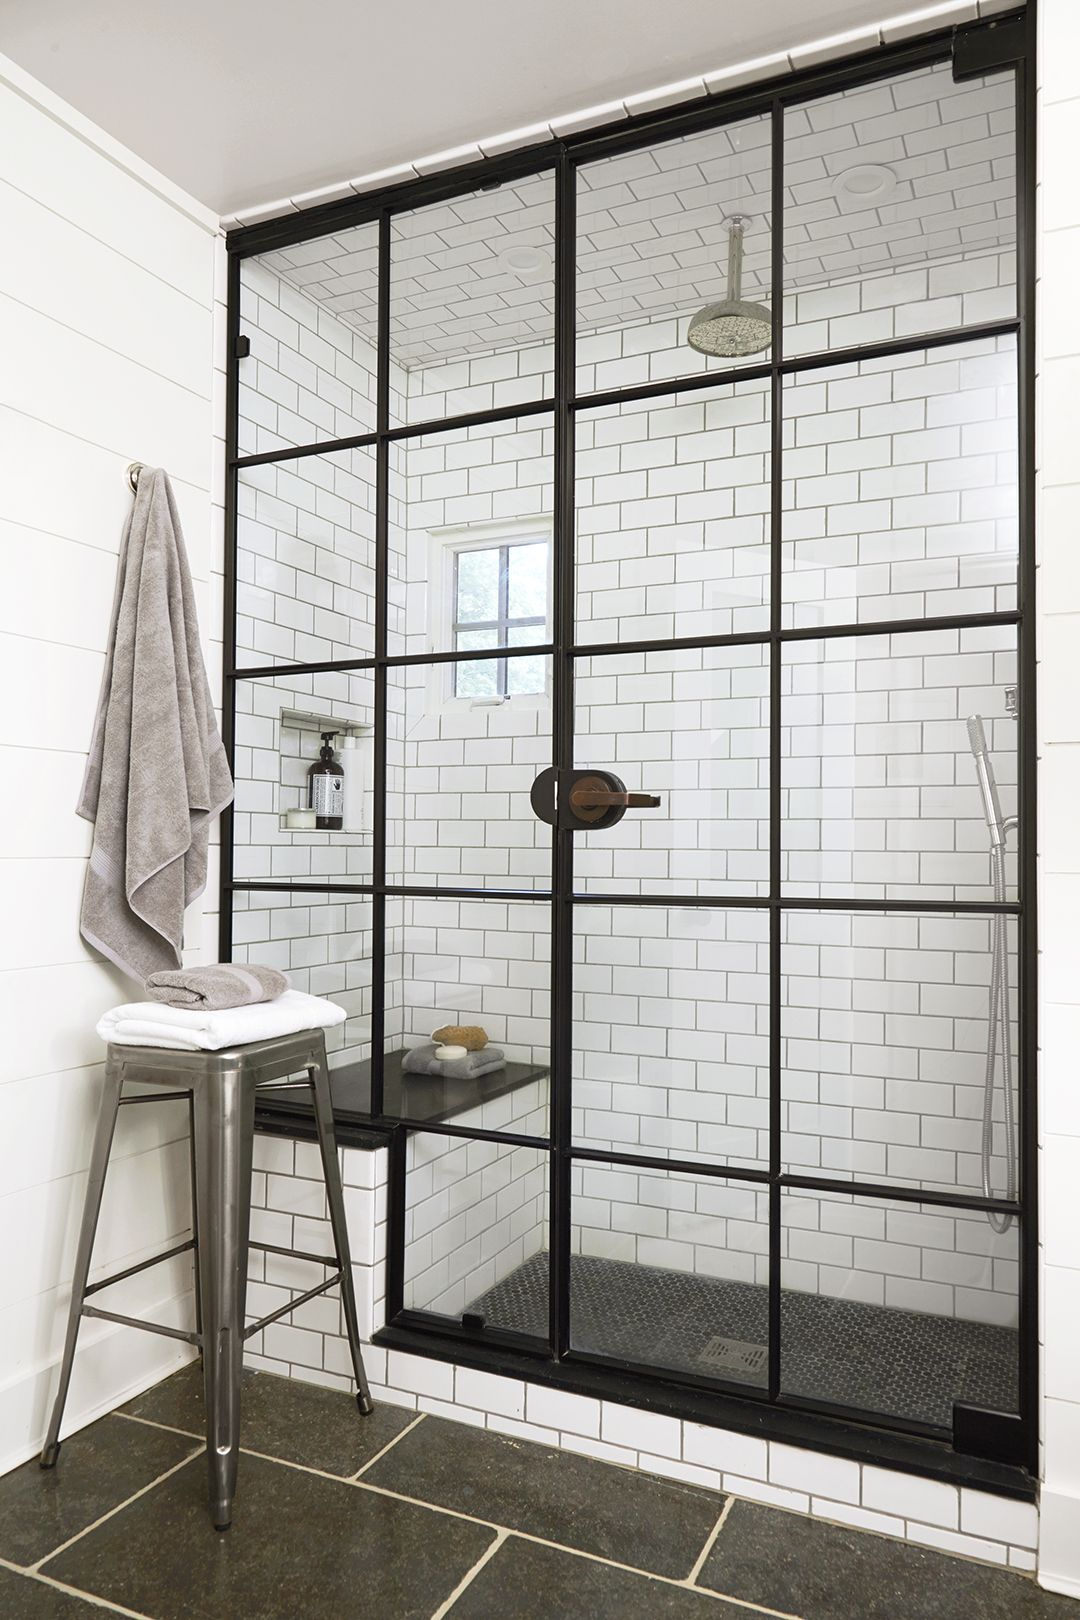 7 brilliant tips to make your glass shower doors sparkle